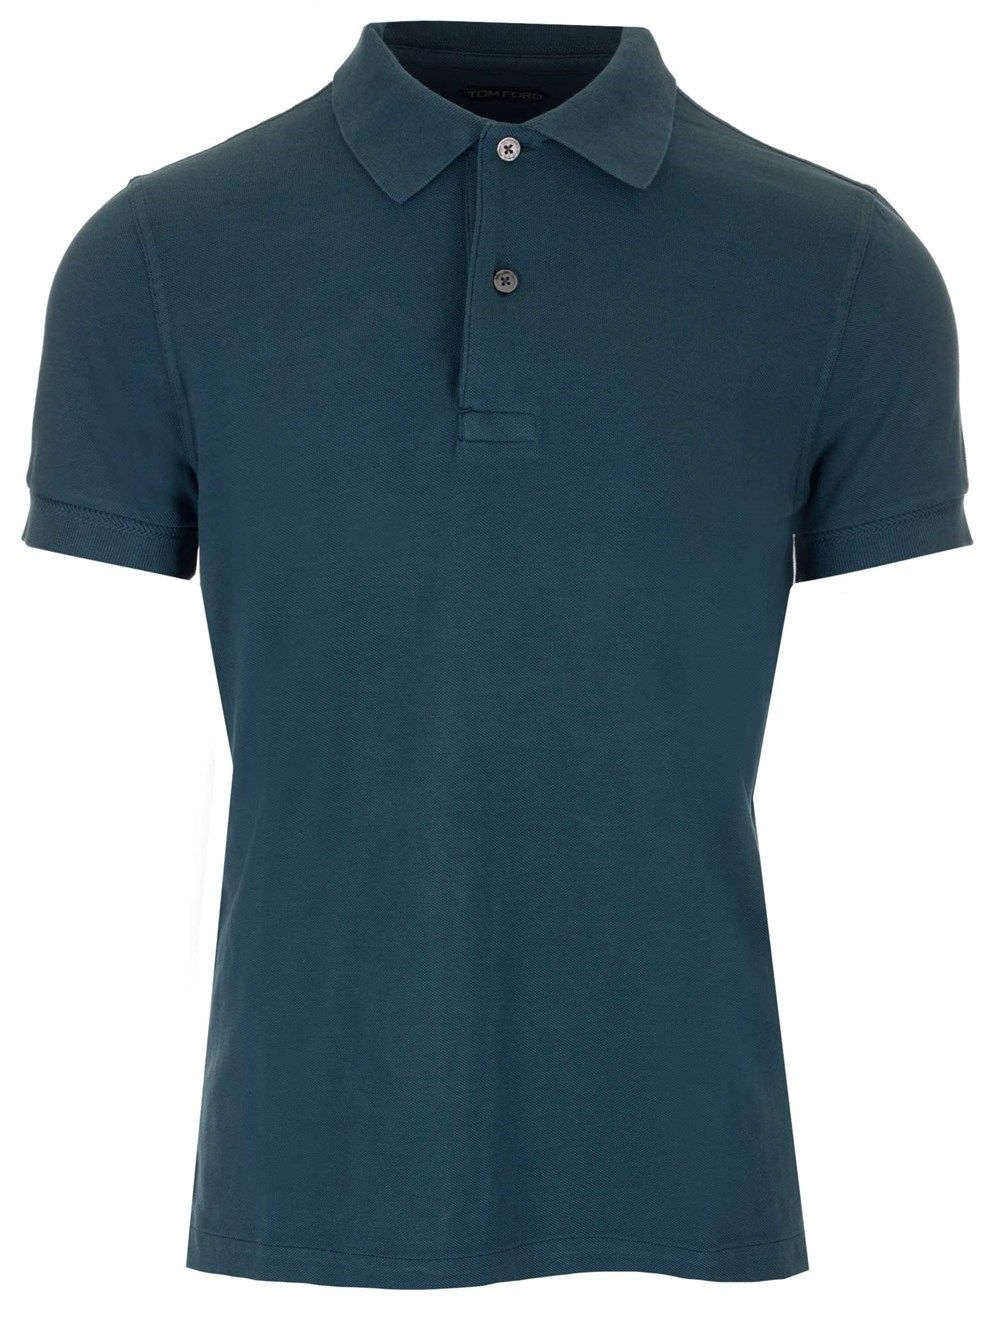 Tom Ford Cottons TOM FORD MEN'S BW266TFJ982T07 LIGHT BLUE OTHER MATERIALS POLO SHIRT